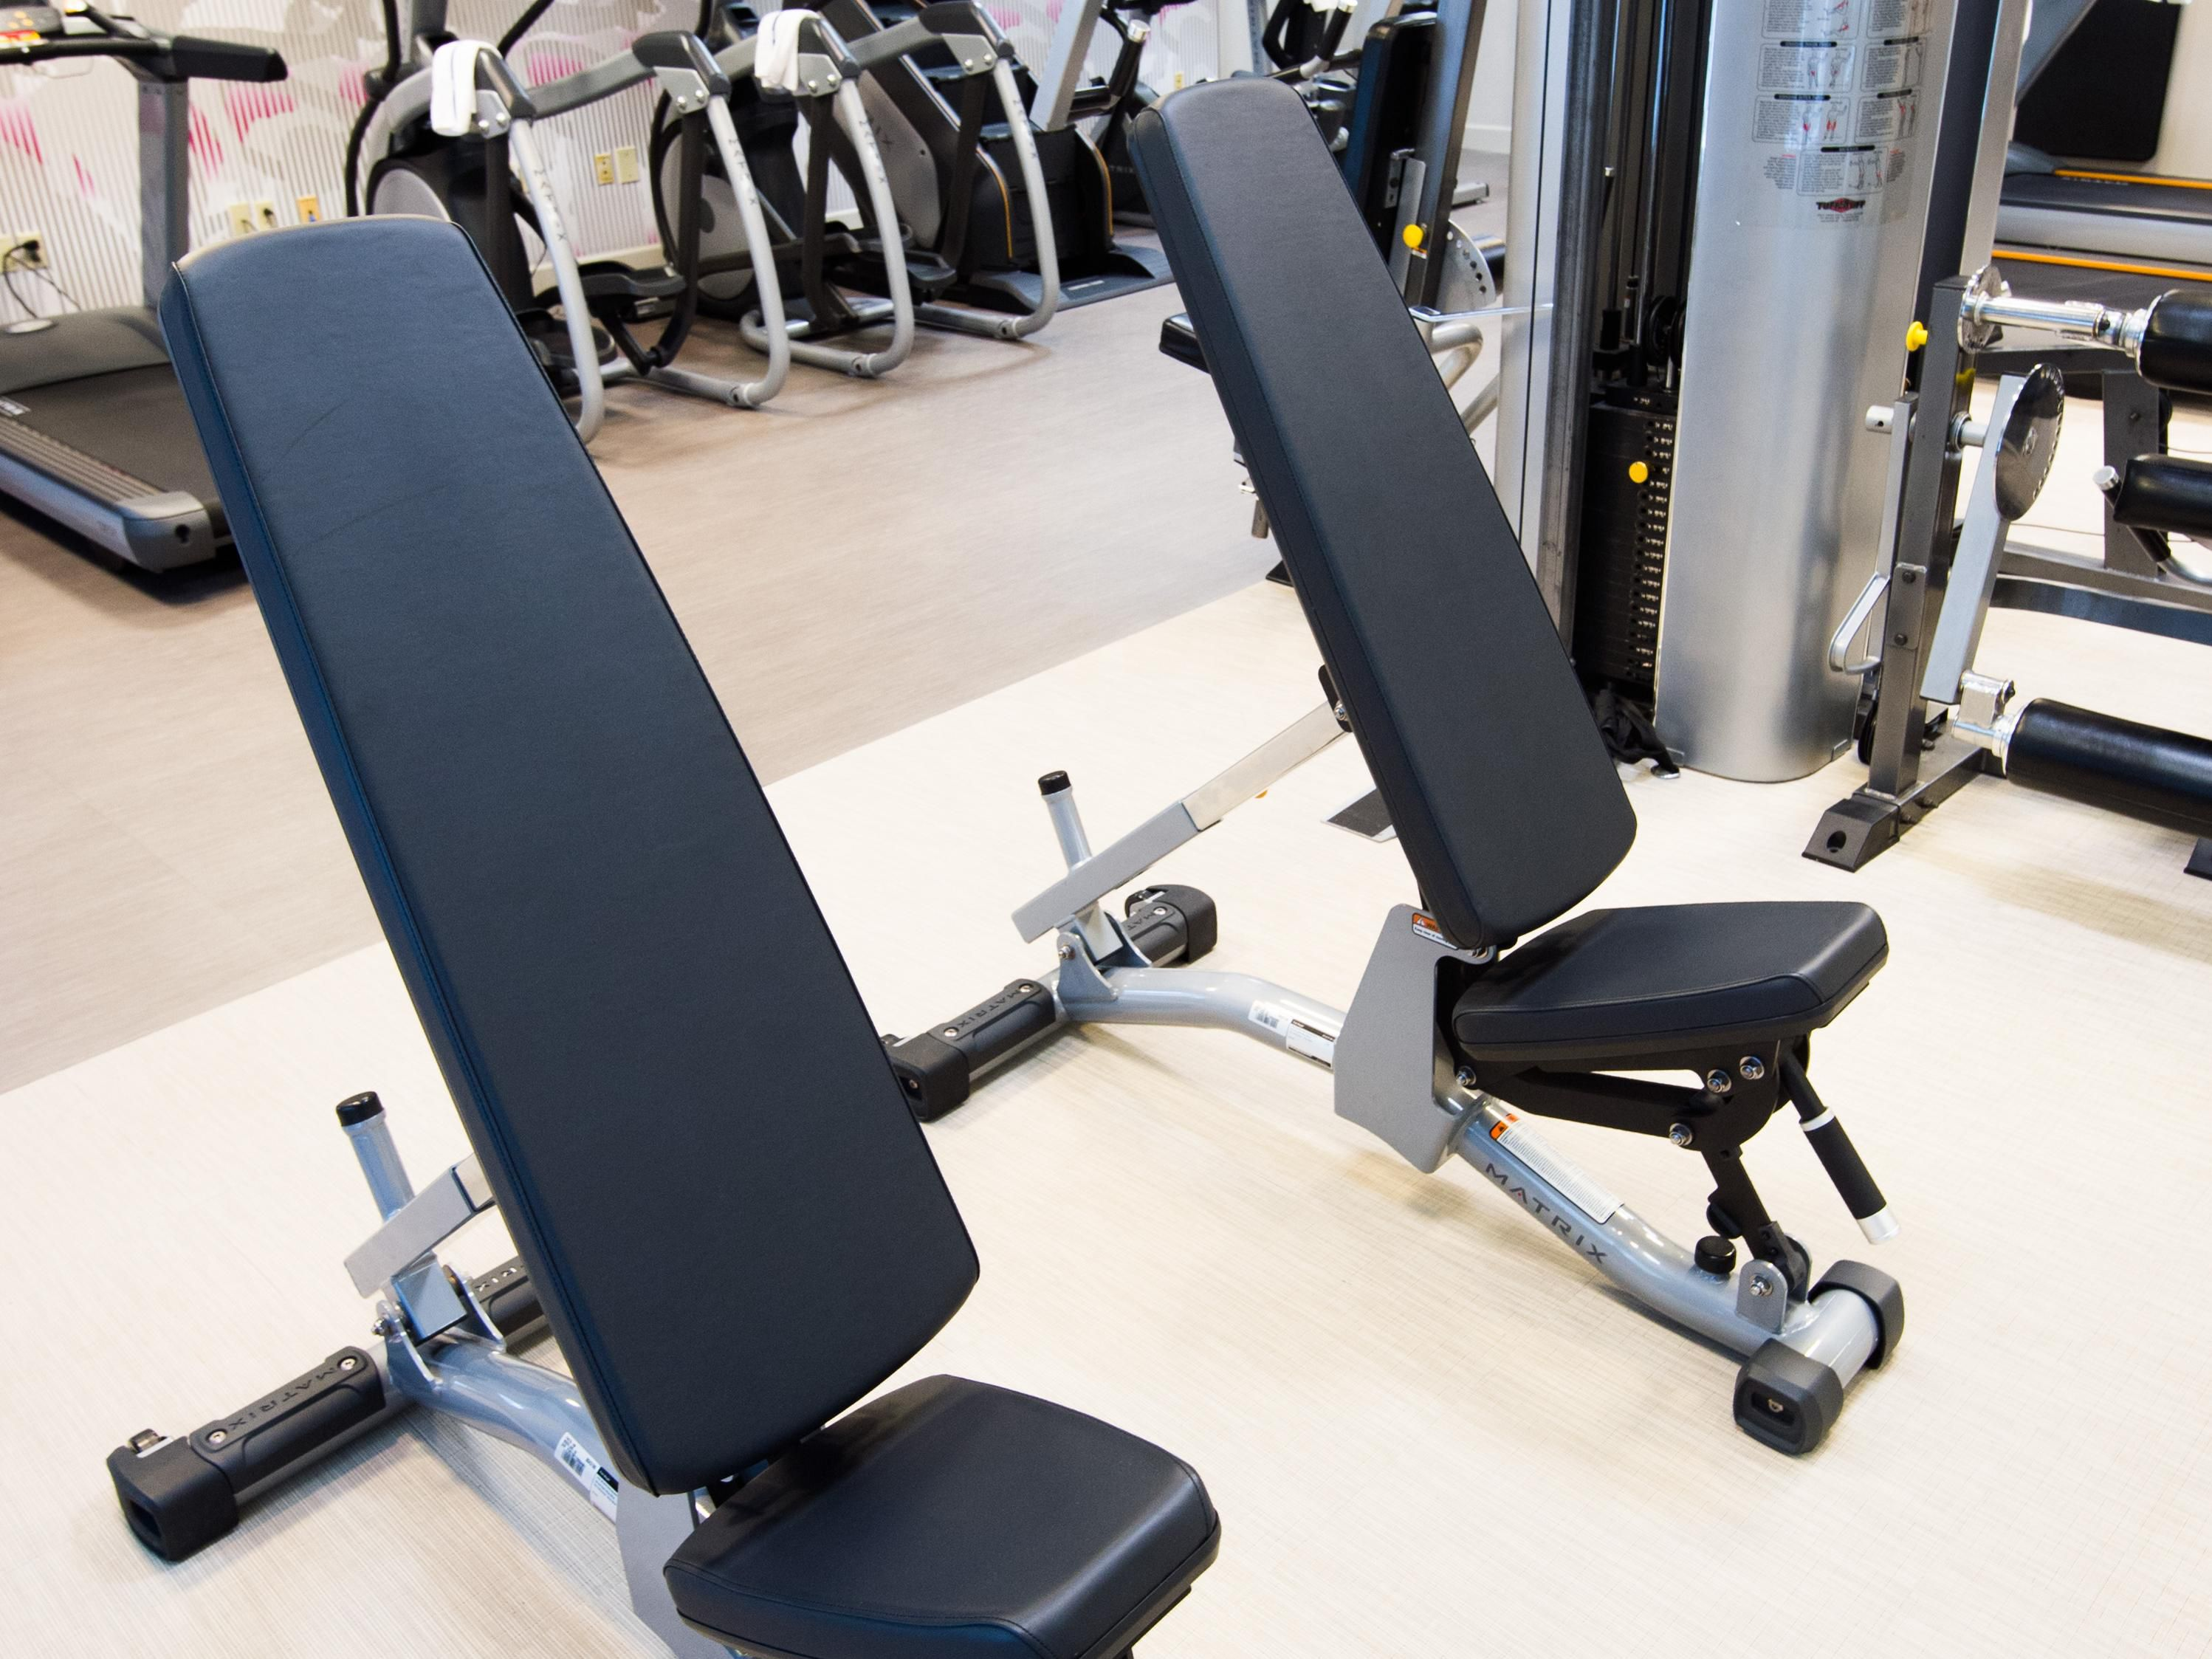 gym and made equipment shop shoulder by azfitnessequipmentcom free sports authority loaded bench marbo plate from machine sport machines press weight fitness products